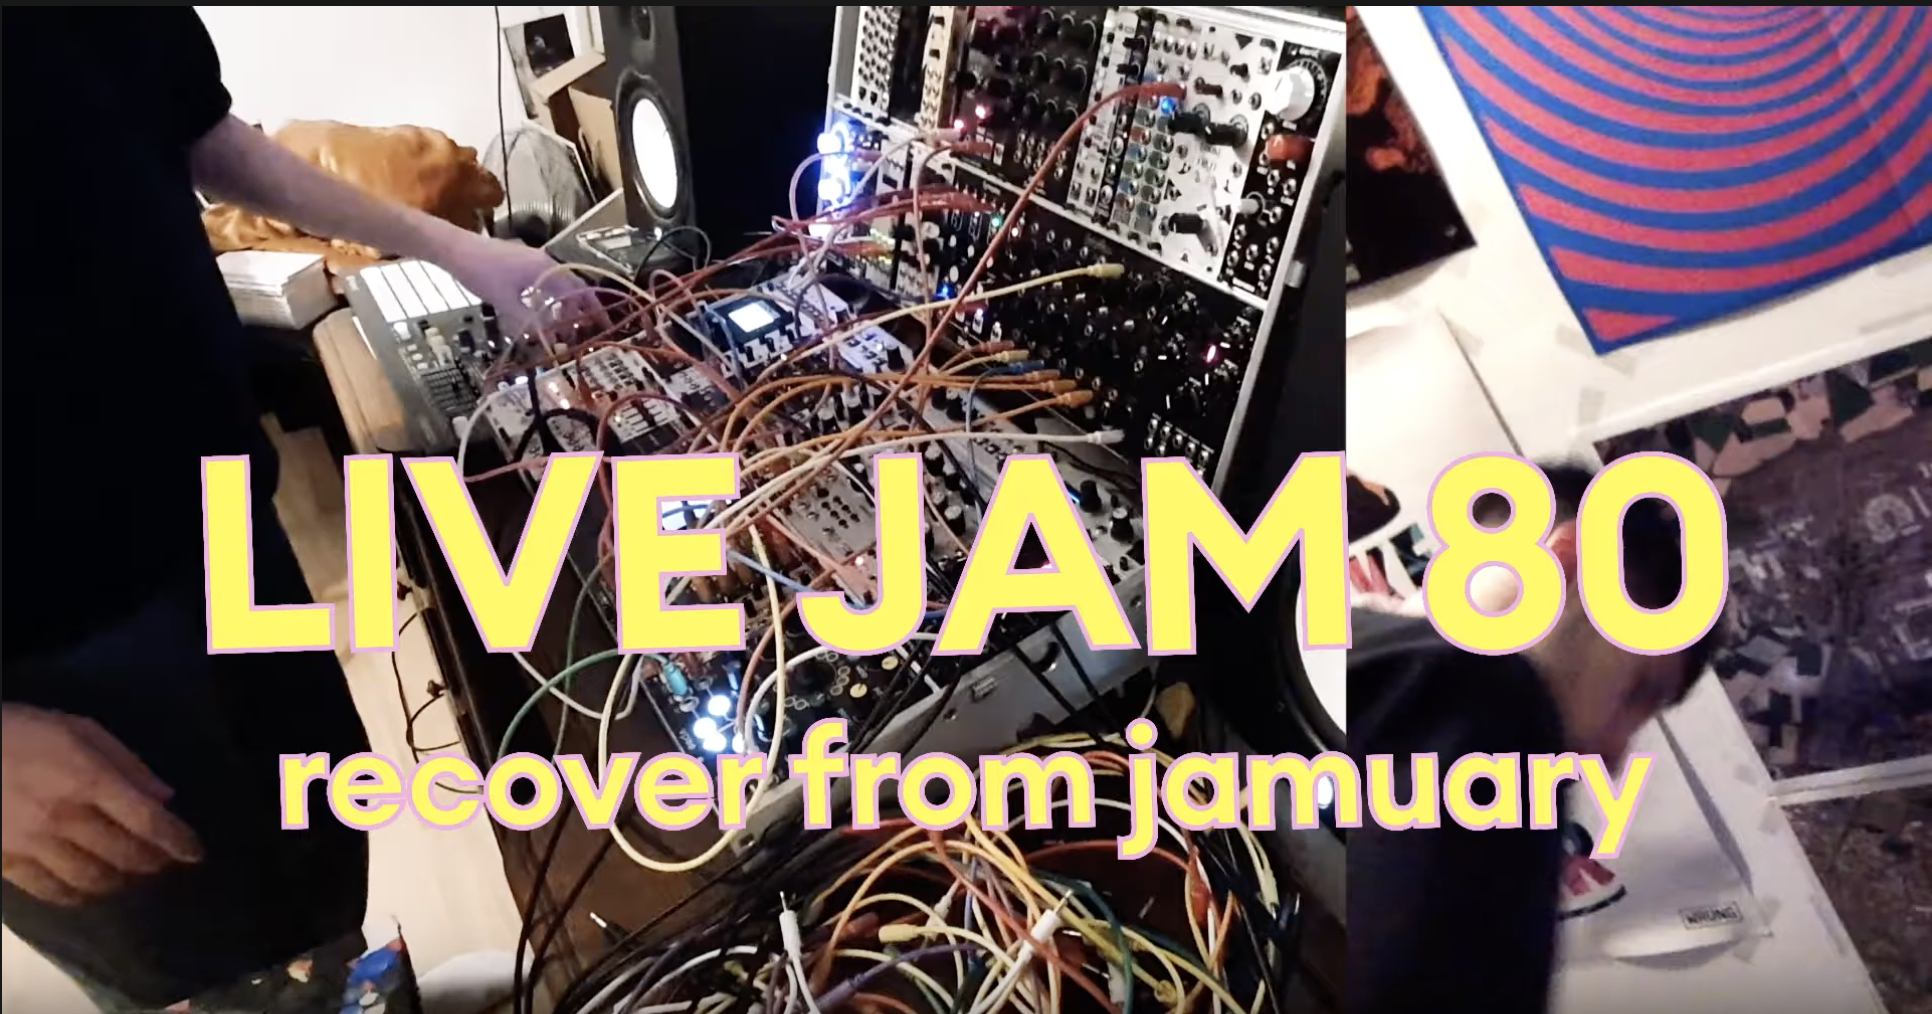 Neurotypique – LIVE JAM 80